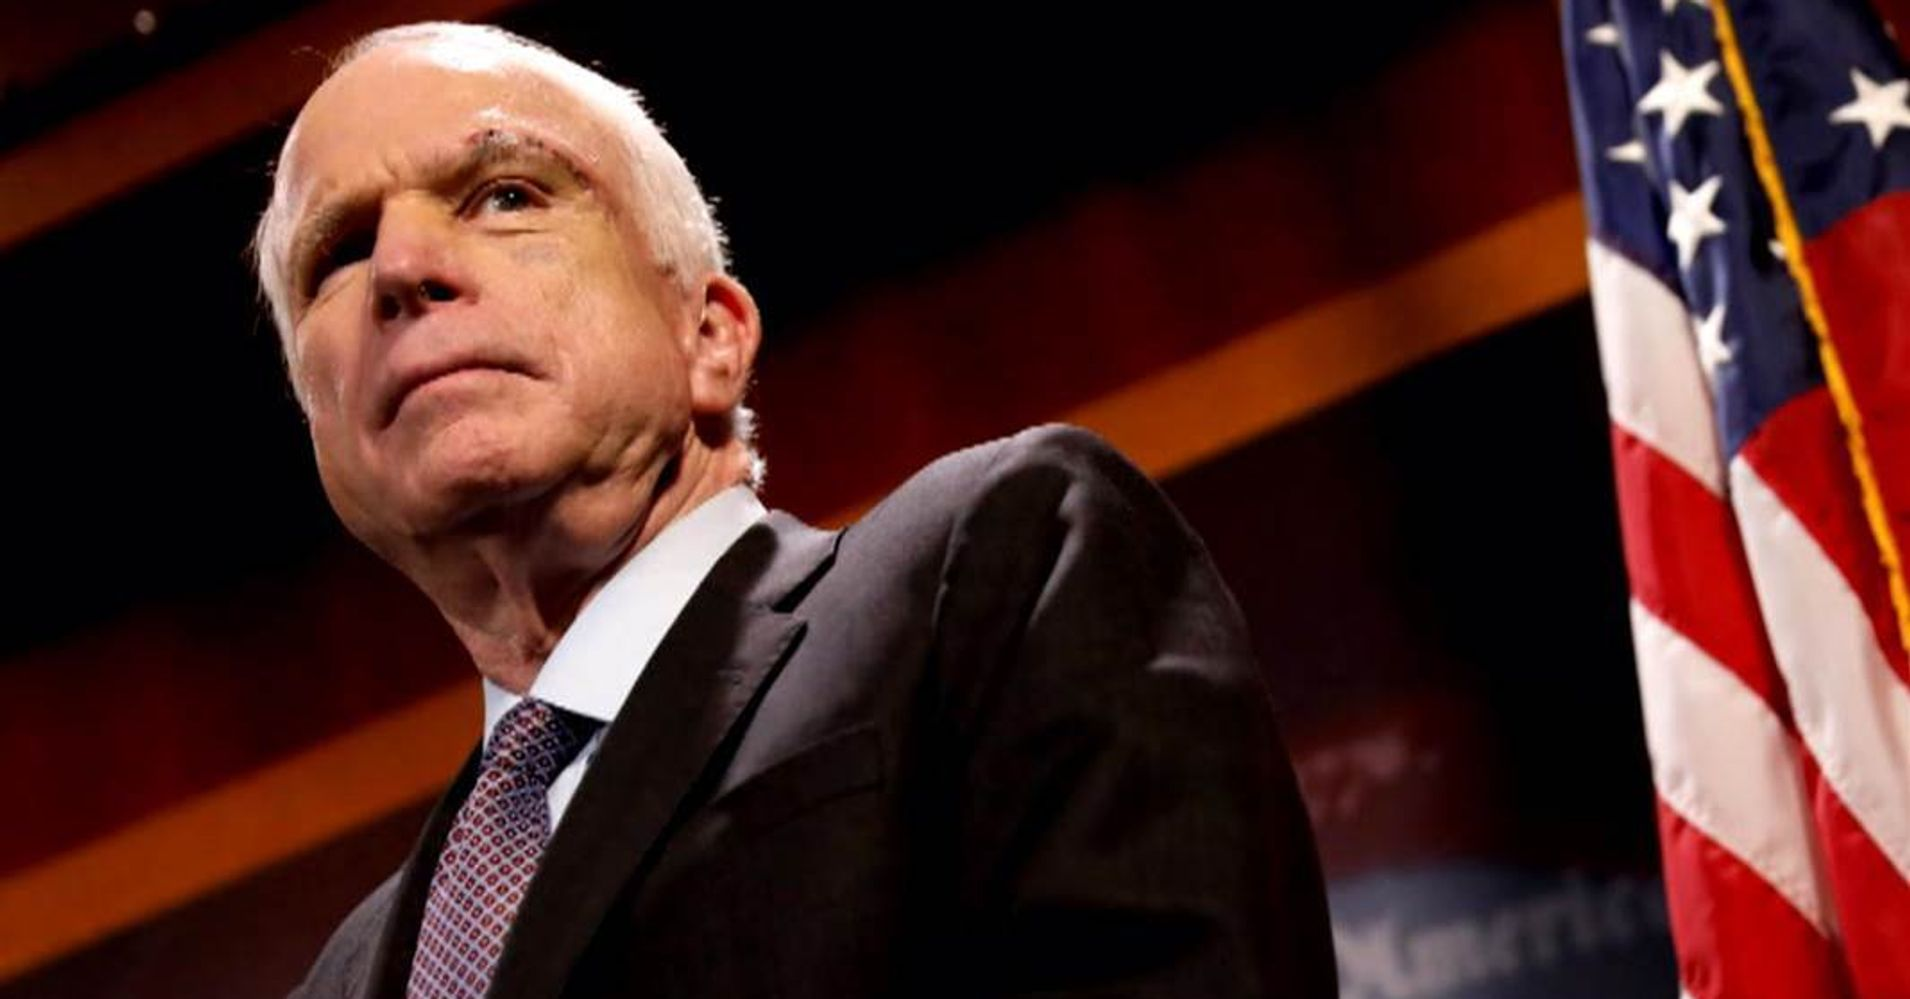 mccain single guys The other mccain one should either because the available pool of men in online dating is such a notorious swamp of inferior quality.